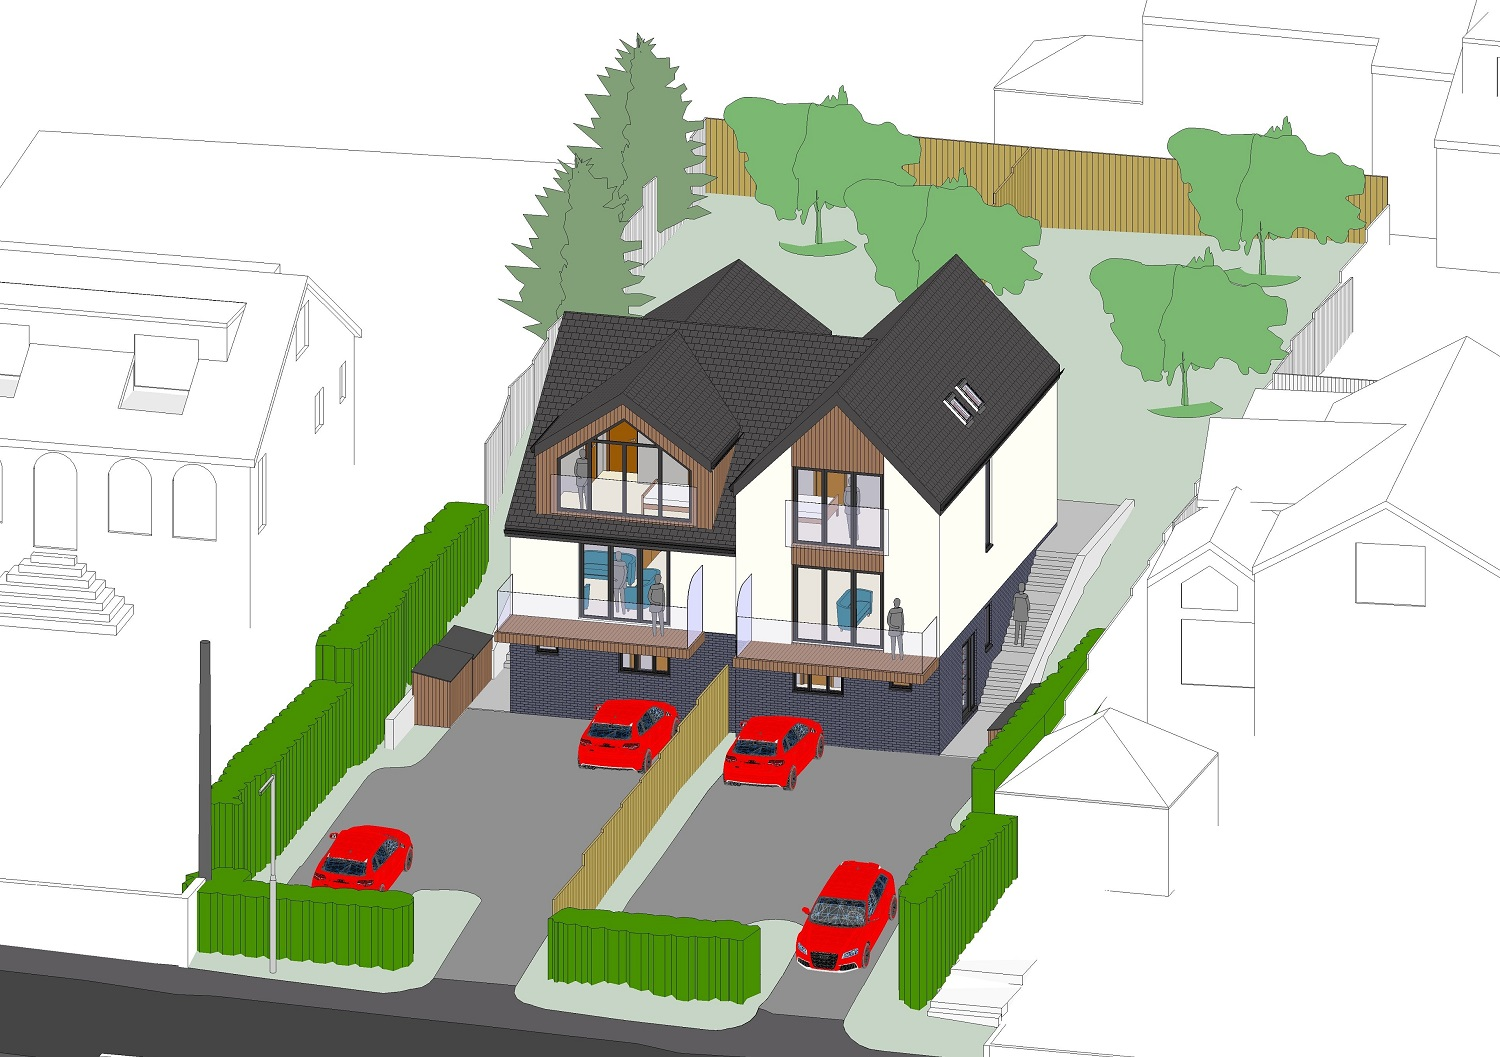 2 NEW PREMIUM HOMES WITH STUNNING VIEWS - Portishead, Hillcrest Road